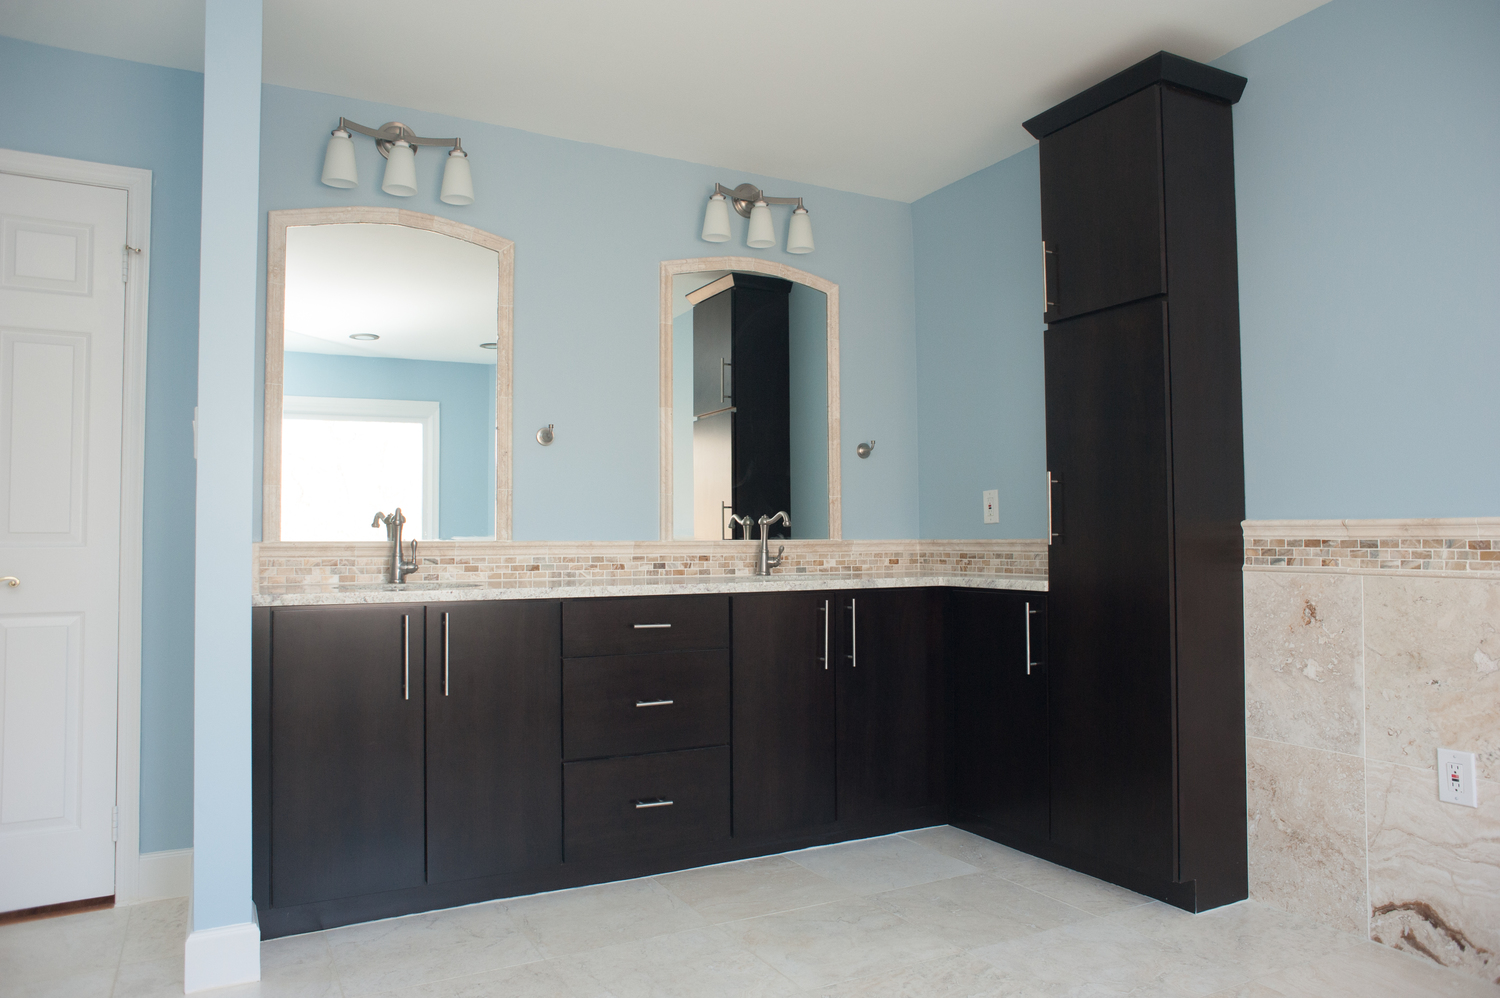 Bathroom+Remodel+MClean+VA - Copy.jpg